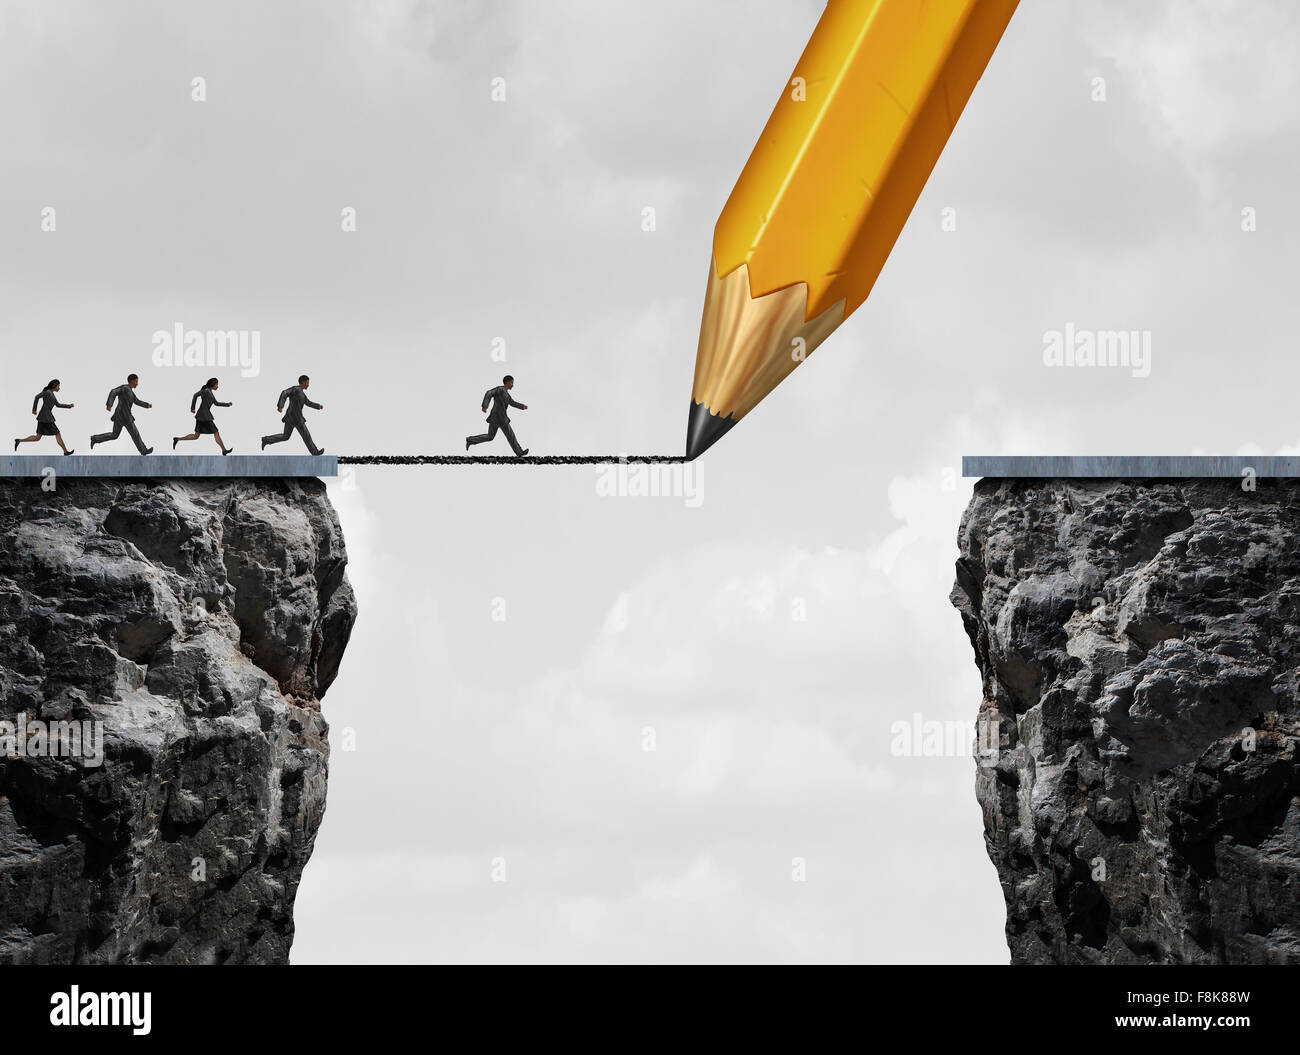 Drawing a bridge and conquering adversity business concept as a group of people running from one cliff to another - Stock Image